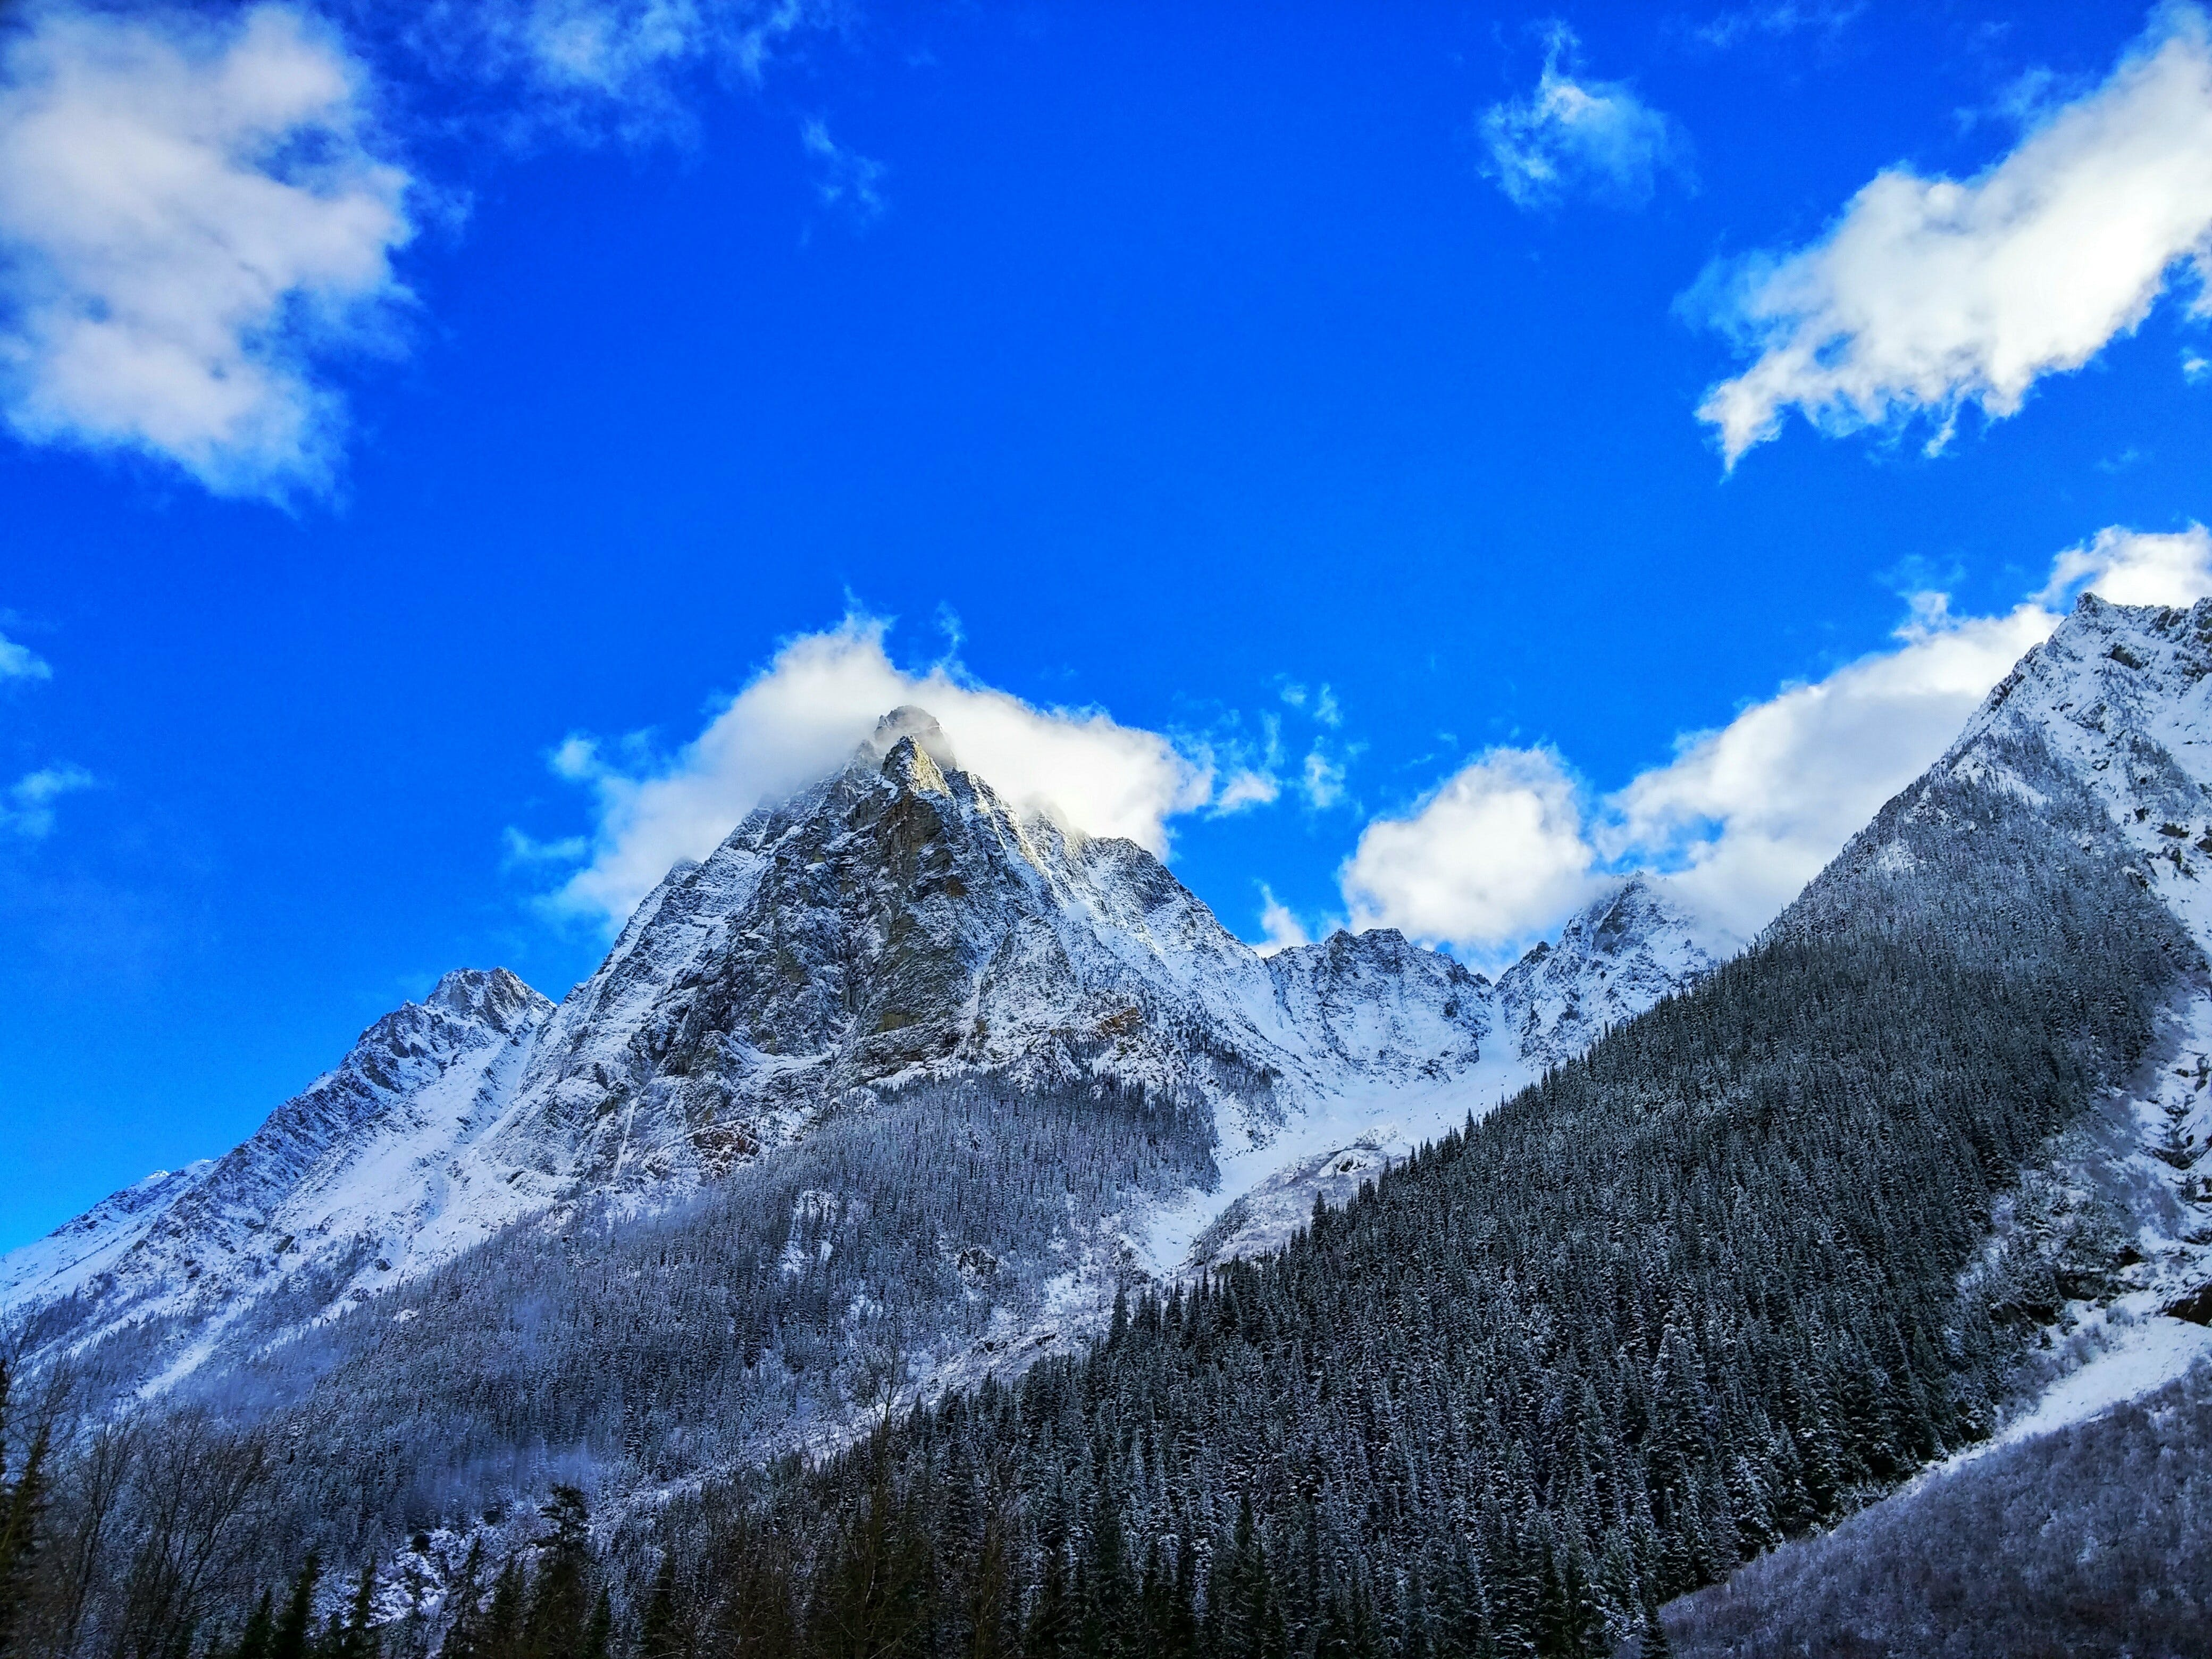 Gray Rocky Mountain Beside Pine Tree Under Blue Cloudy Sky during Day Time